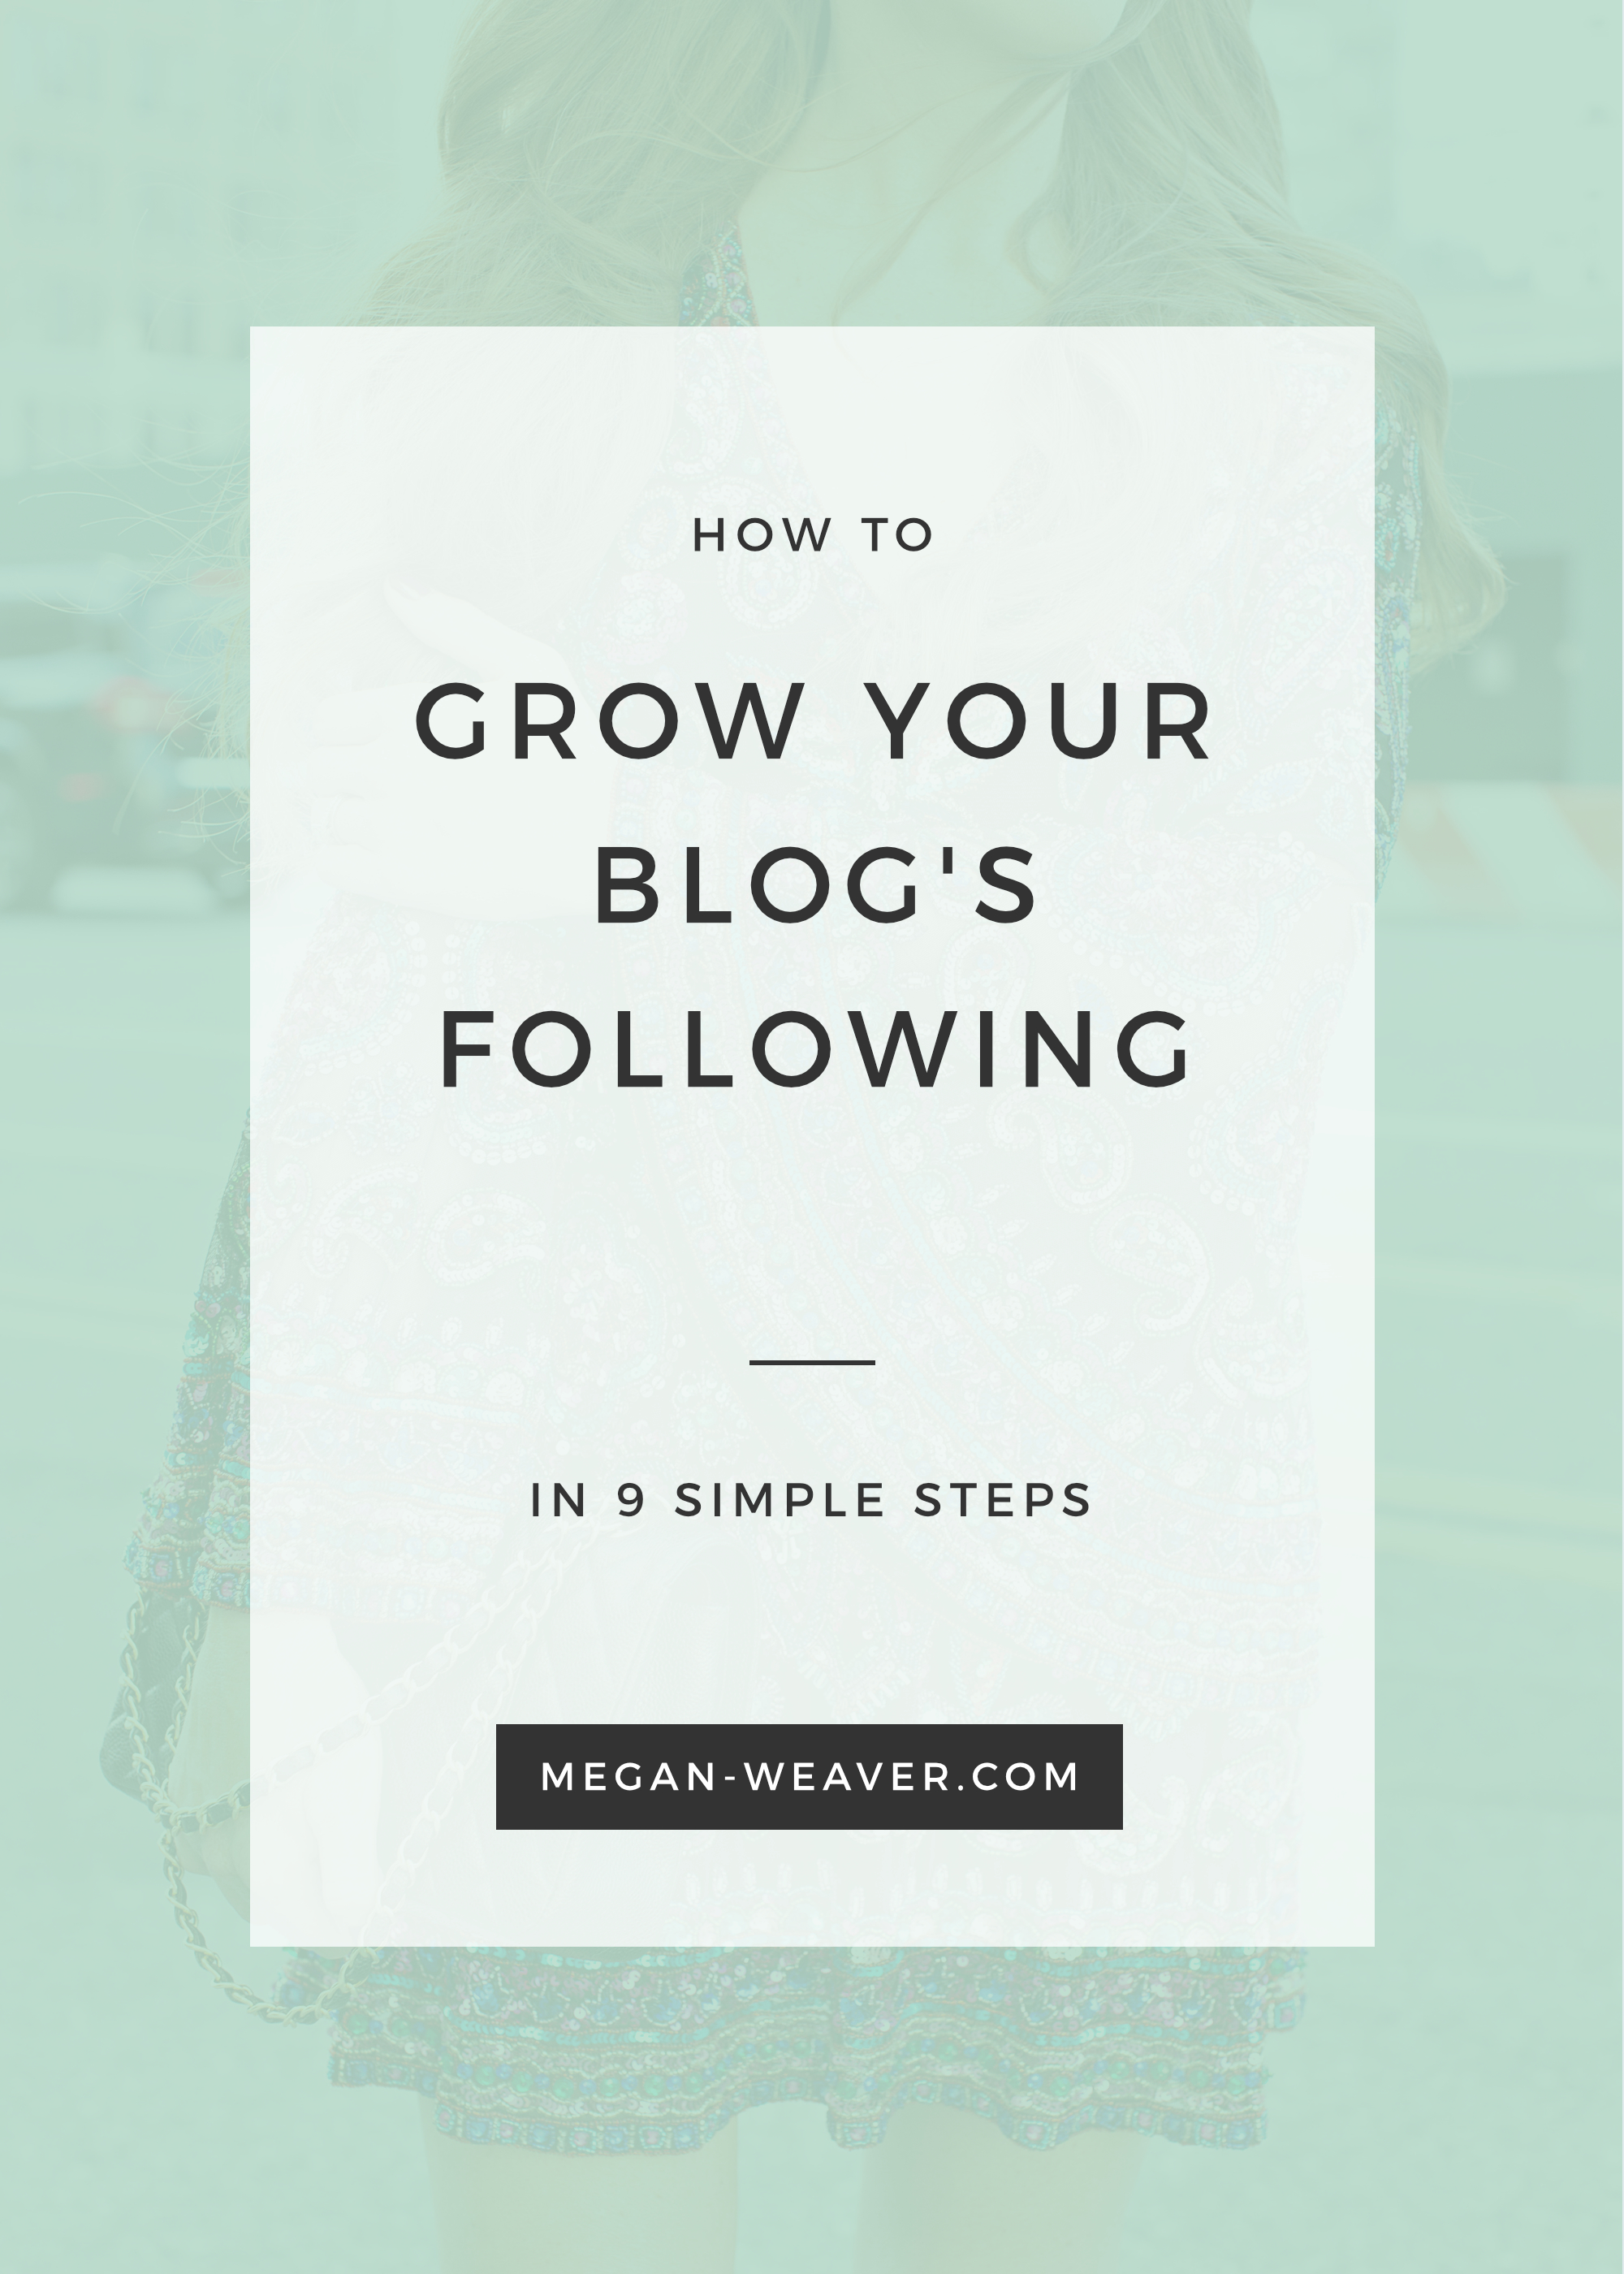 Do you run an awesome blog but struggle with growing your followers? Check out these 9 simple steps to getting the following that you've been dreaming of for your blog!